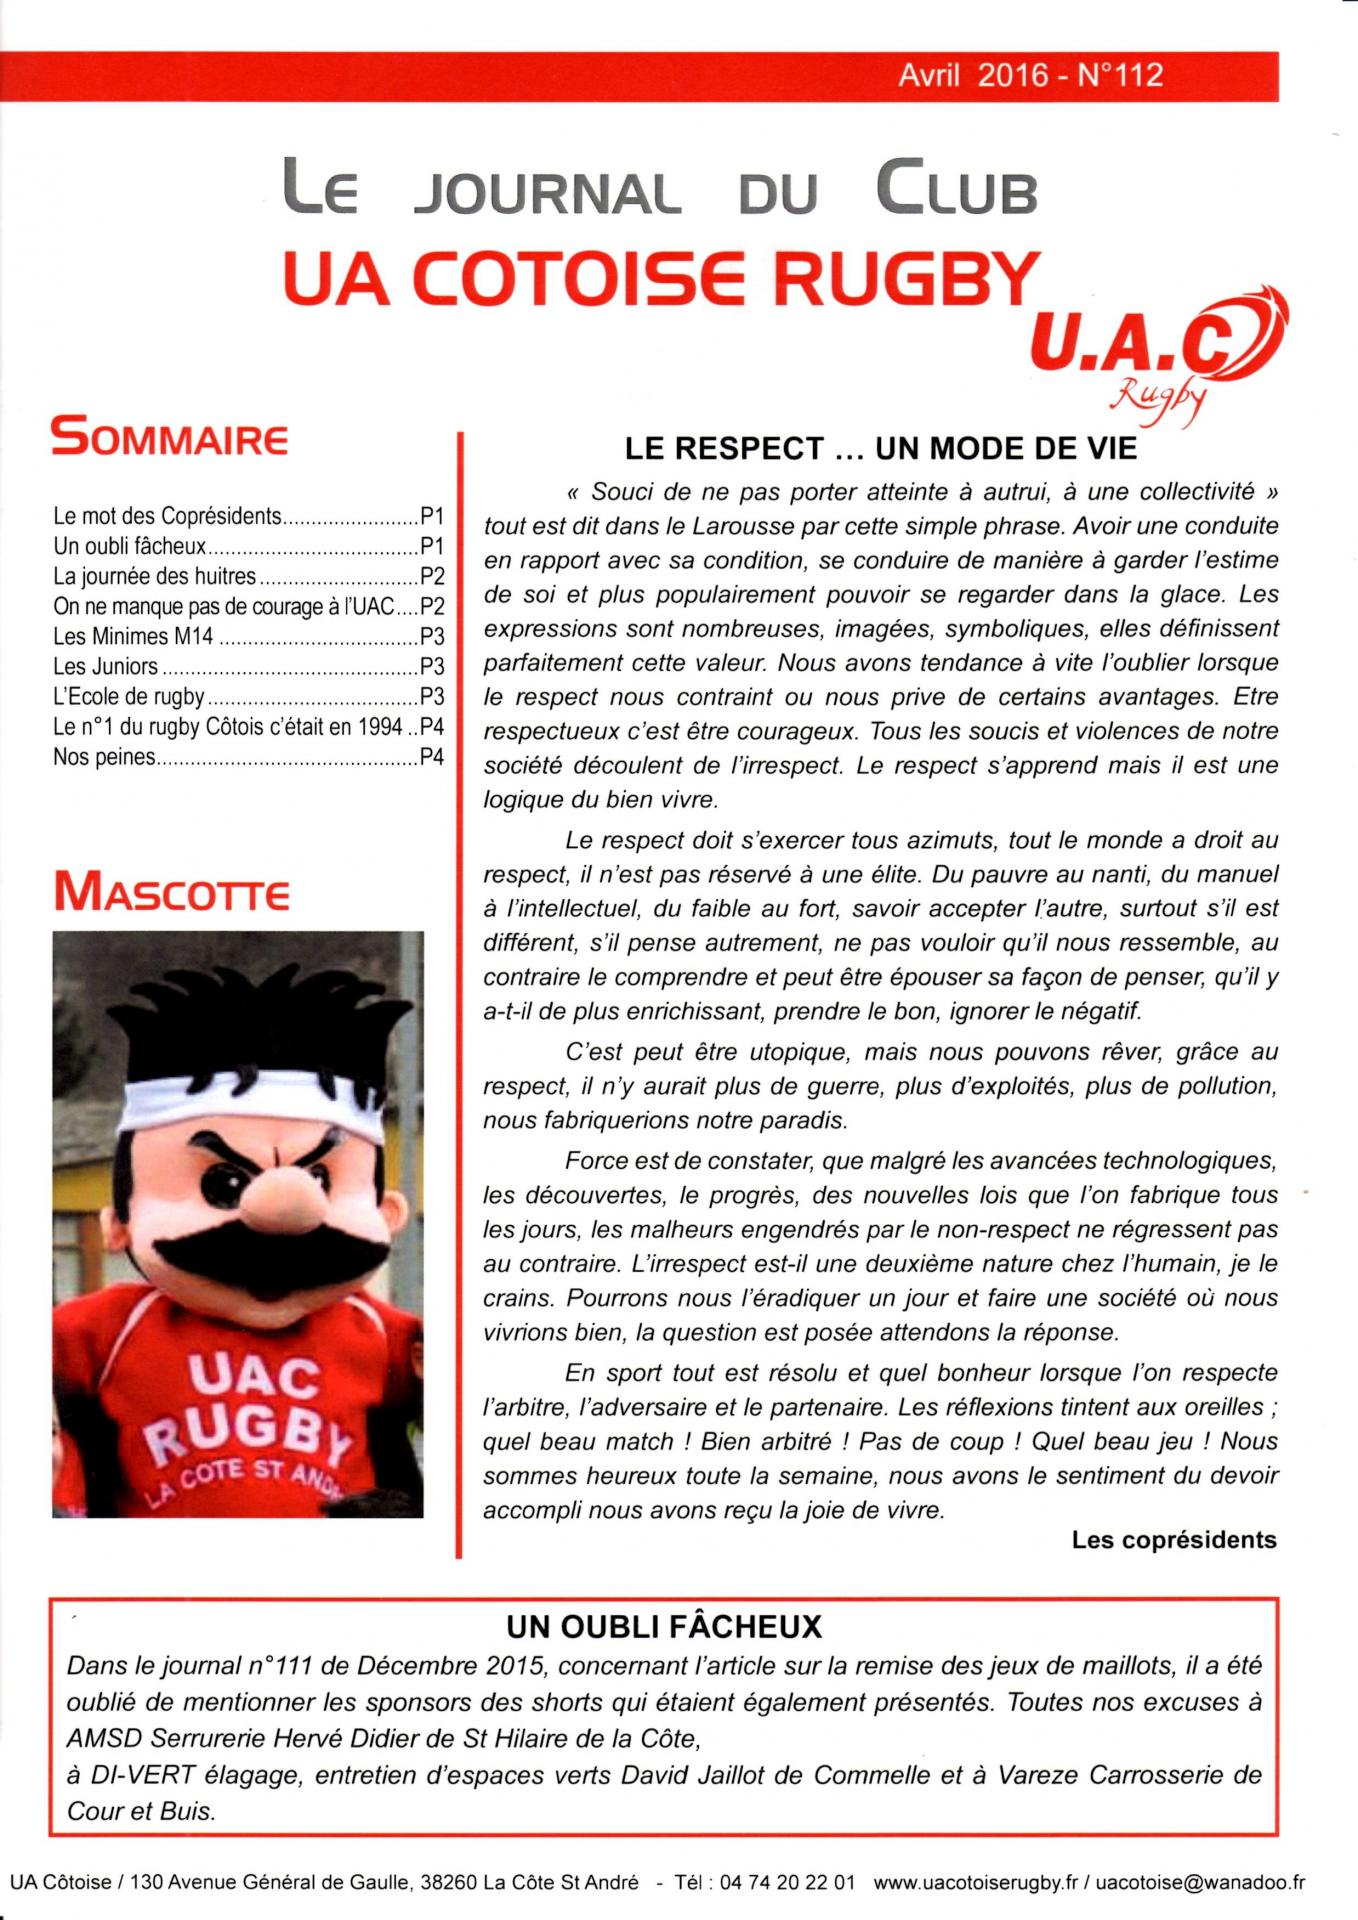 Journal du club p1 n 112